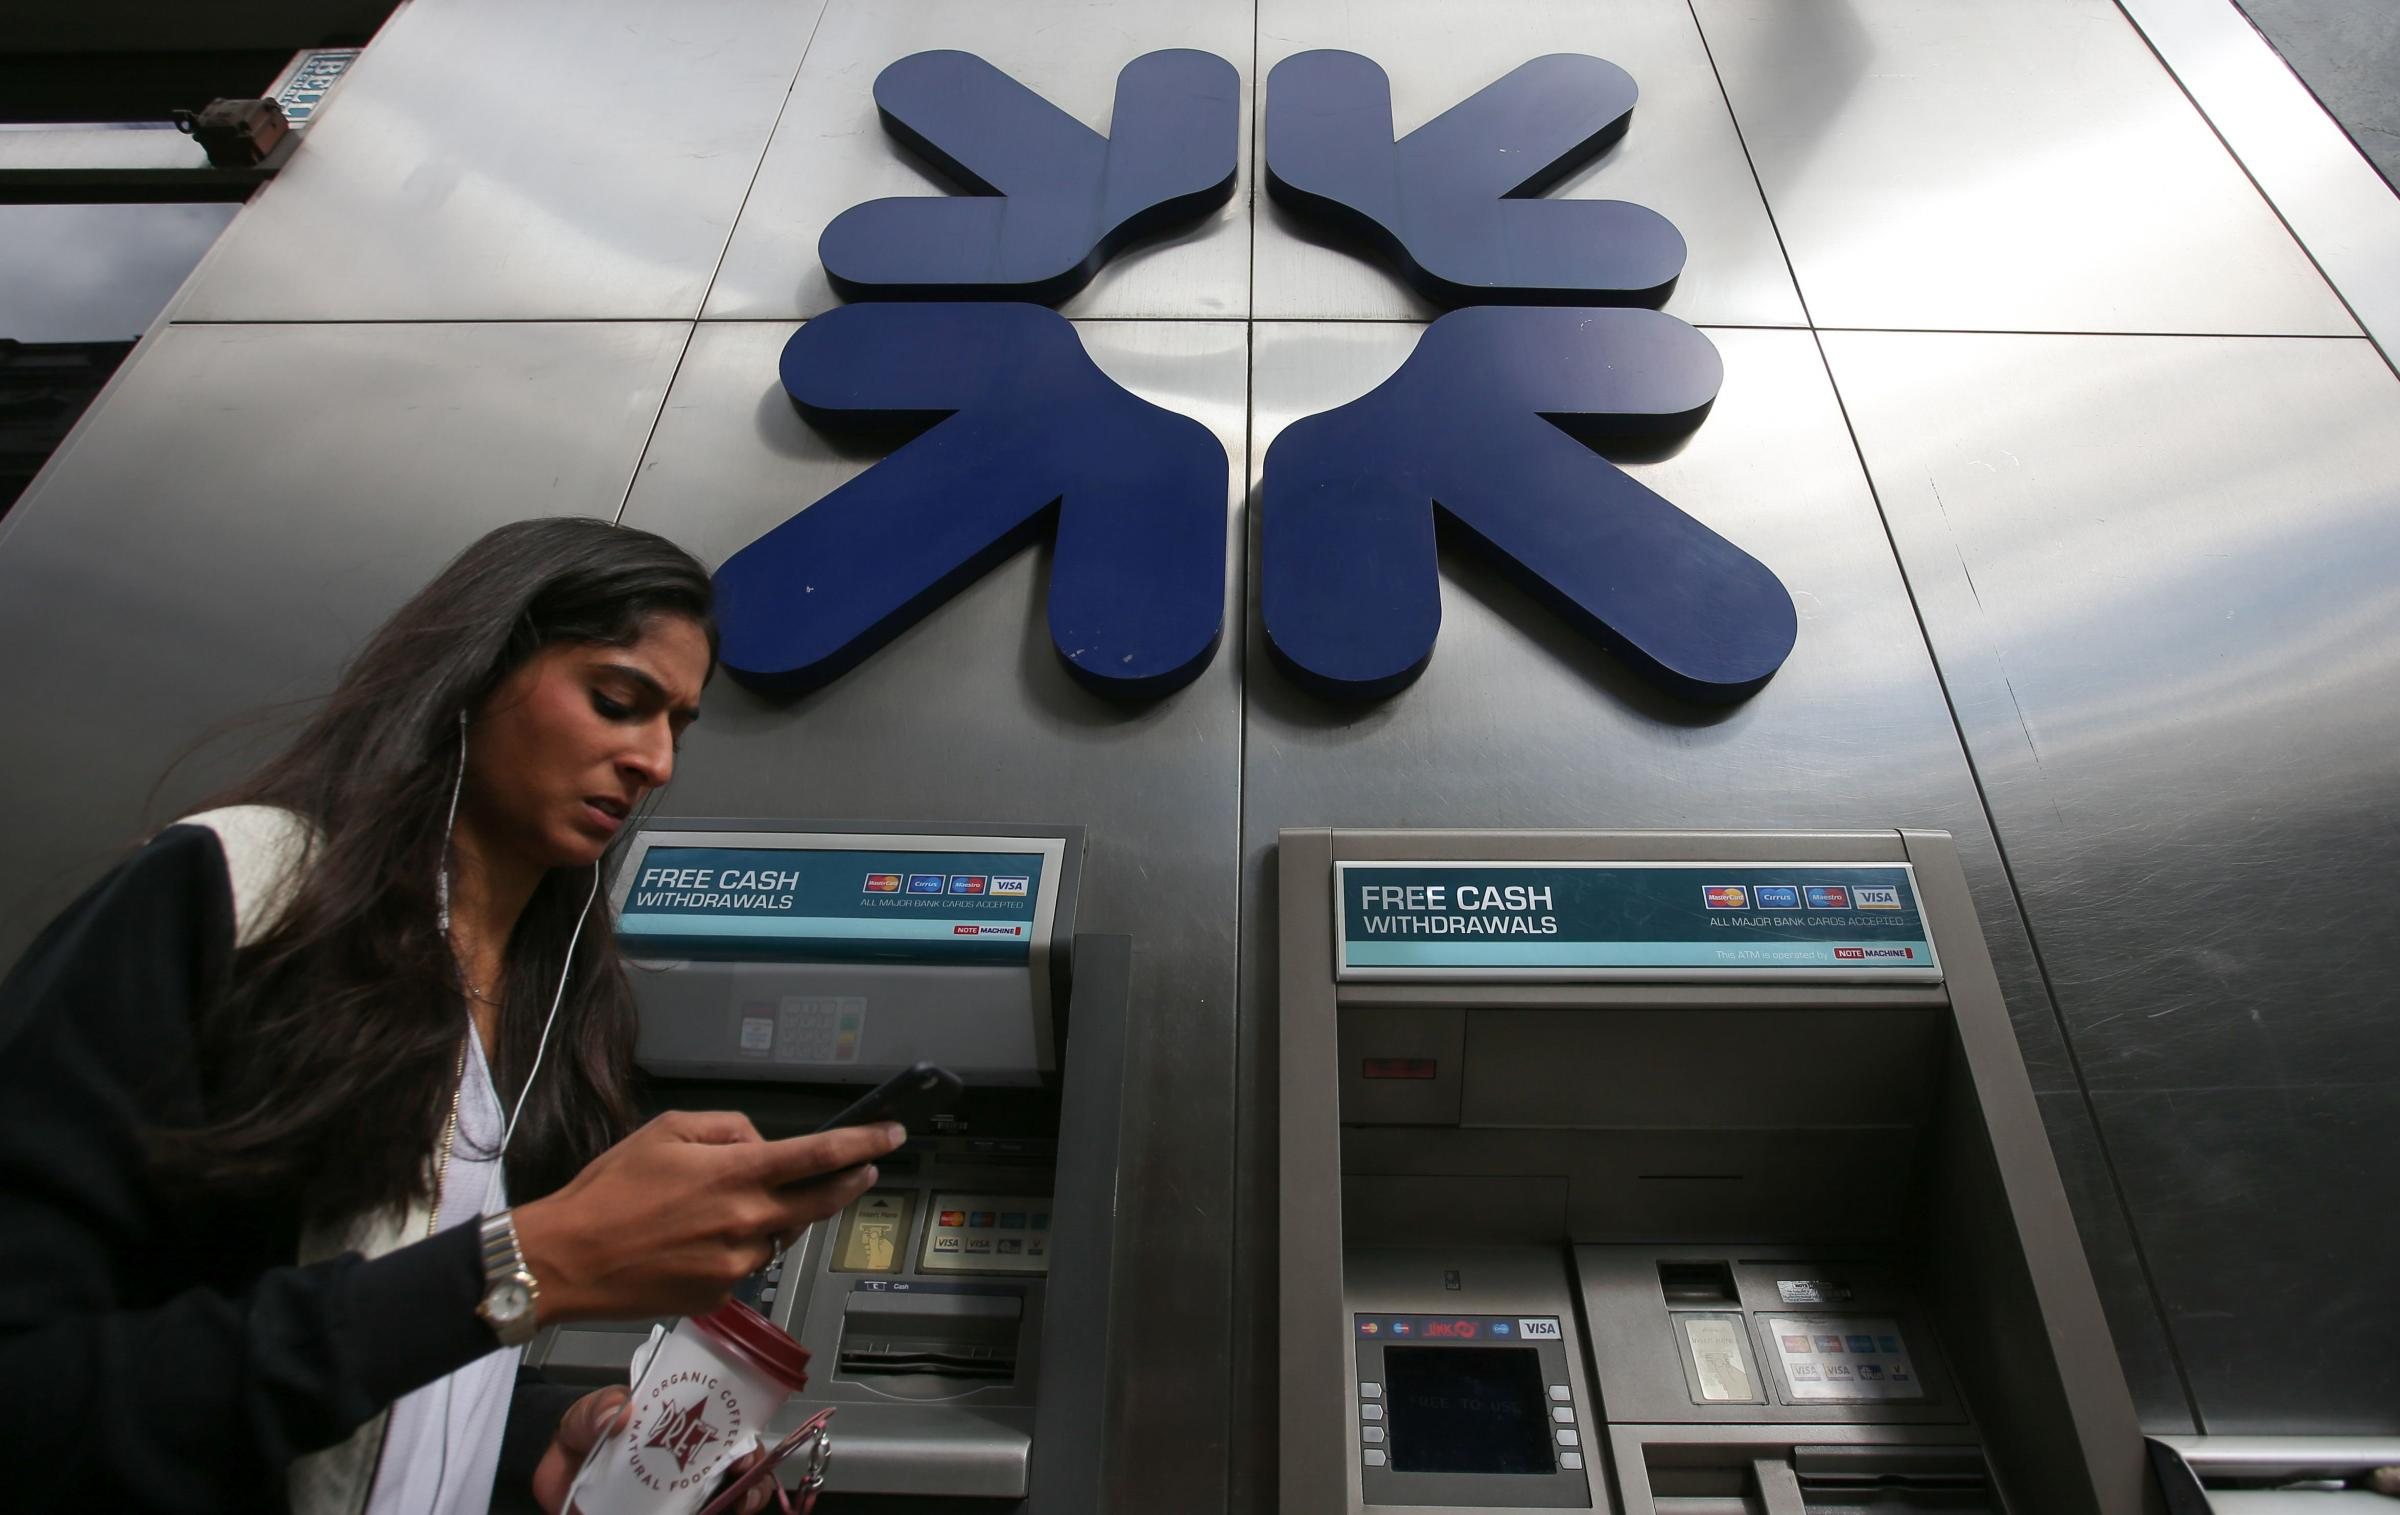 Thousands of RBS shareholders are still waiting to receive their share of a £200m settlement agreed last June.